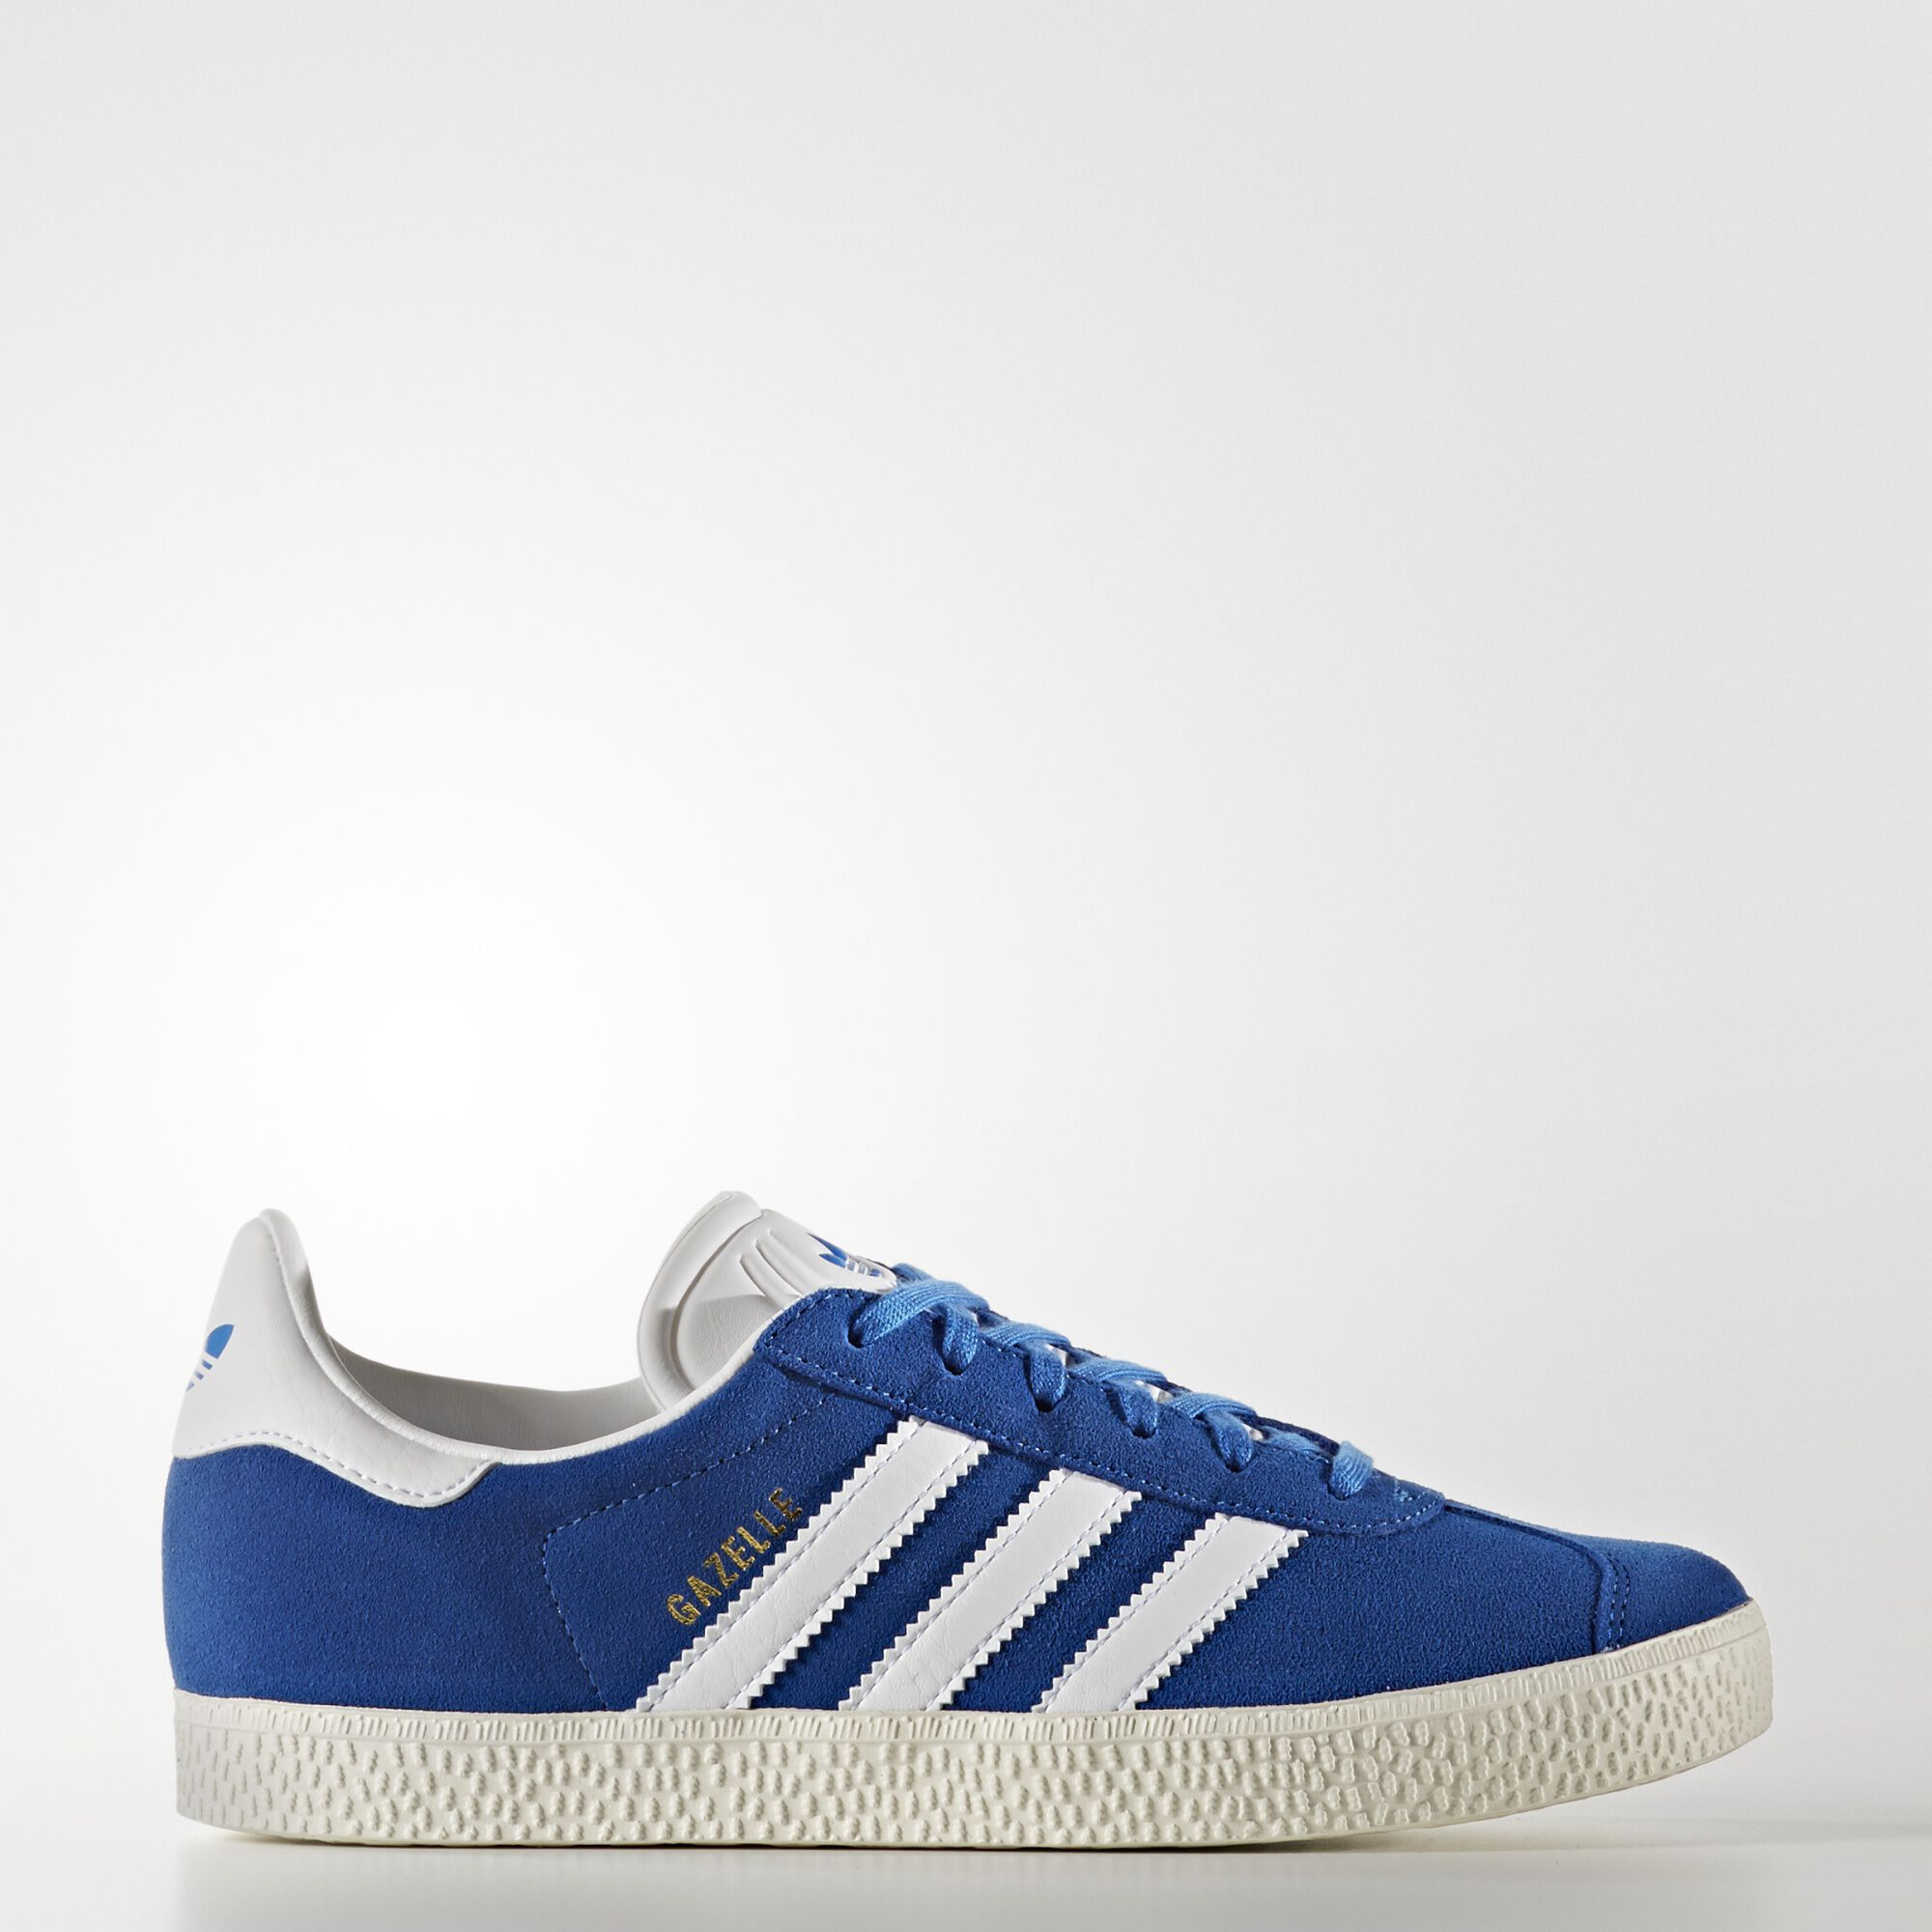 adidas eqt kids shoes blue